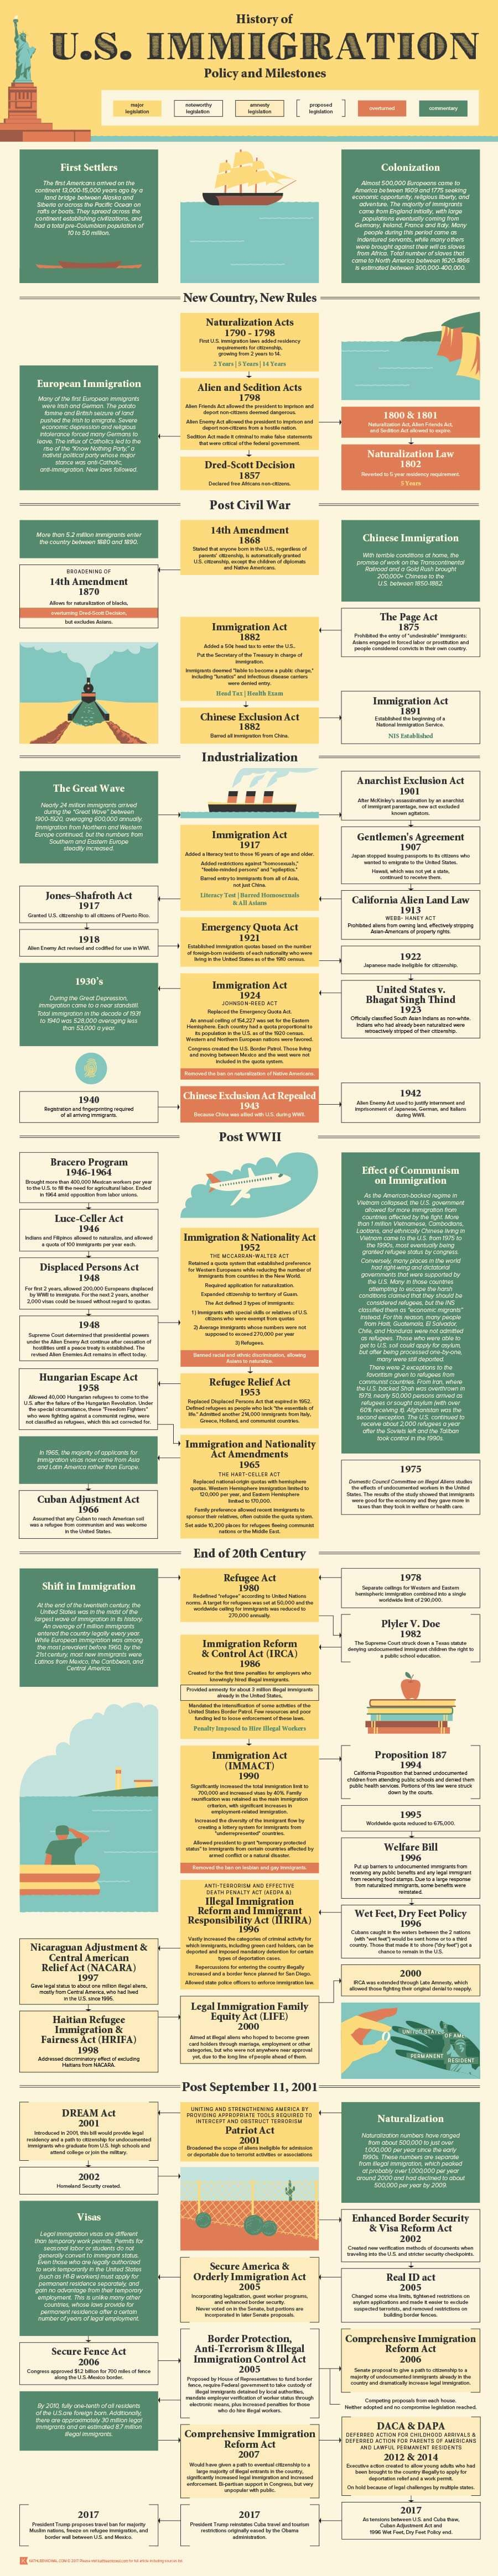 US Immigration Policy History and Timeline Kowal Infographic